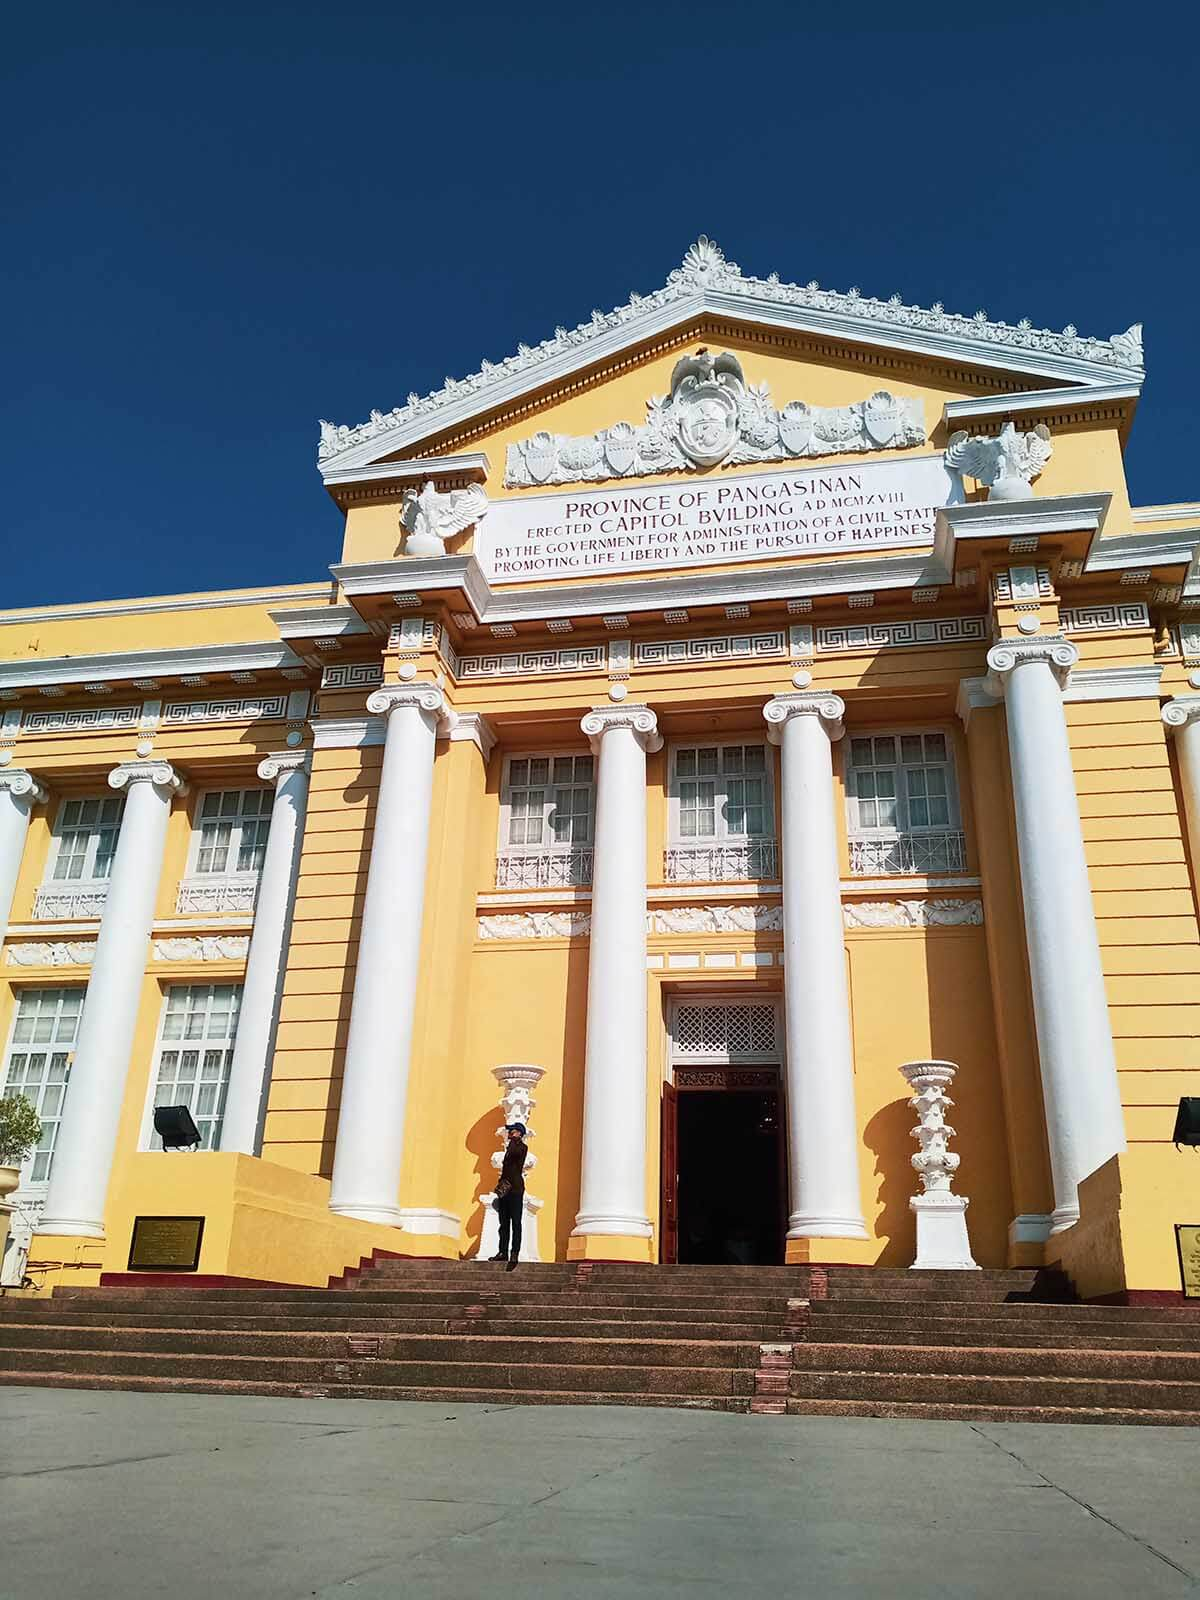 pangasinan travel guide - Provincial Capitol